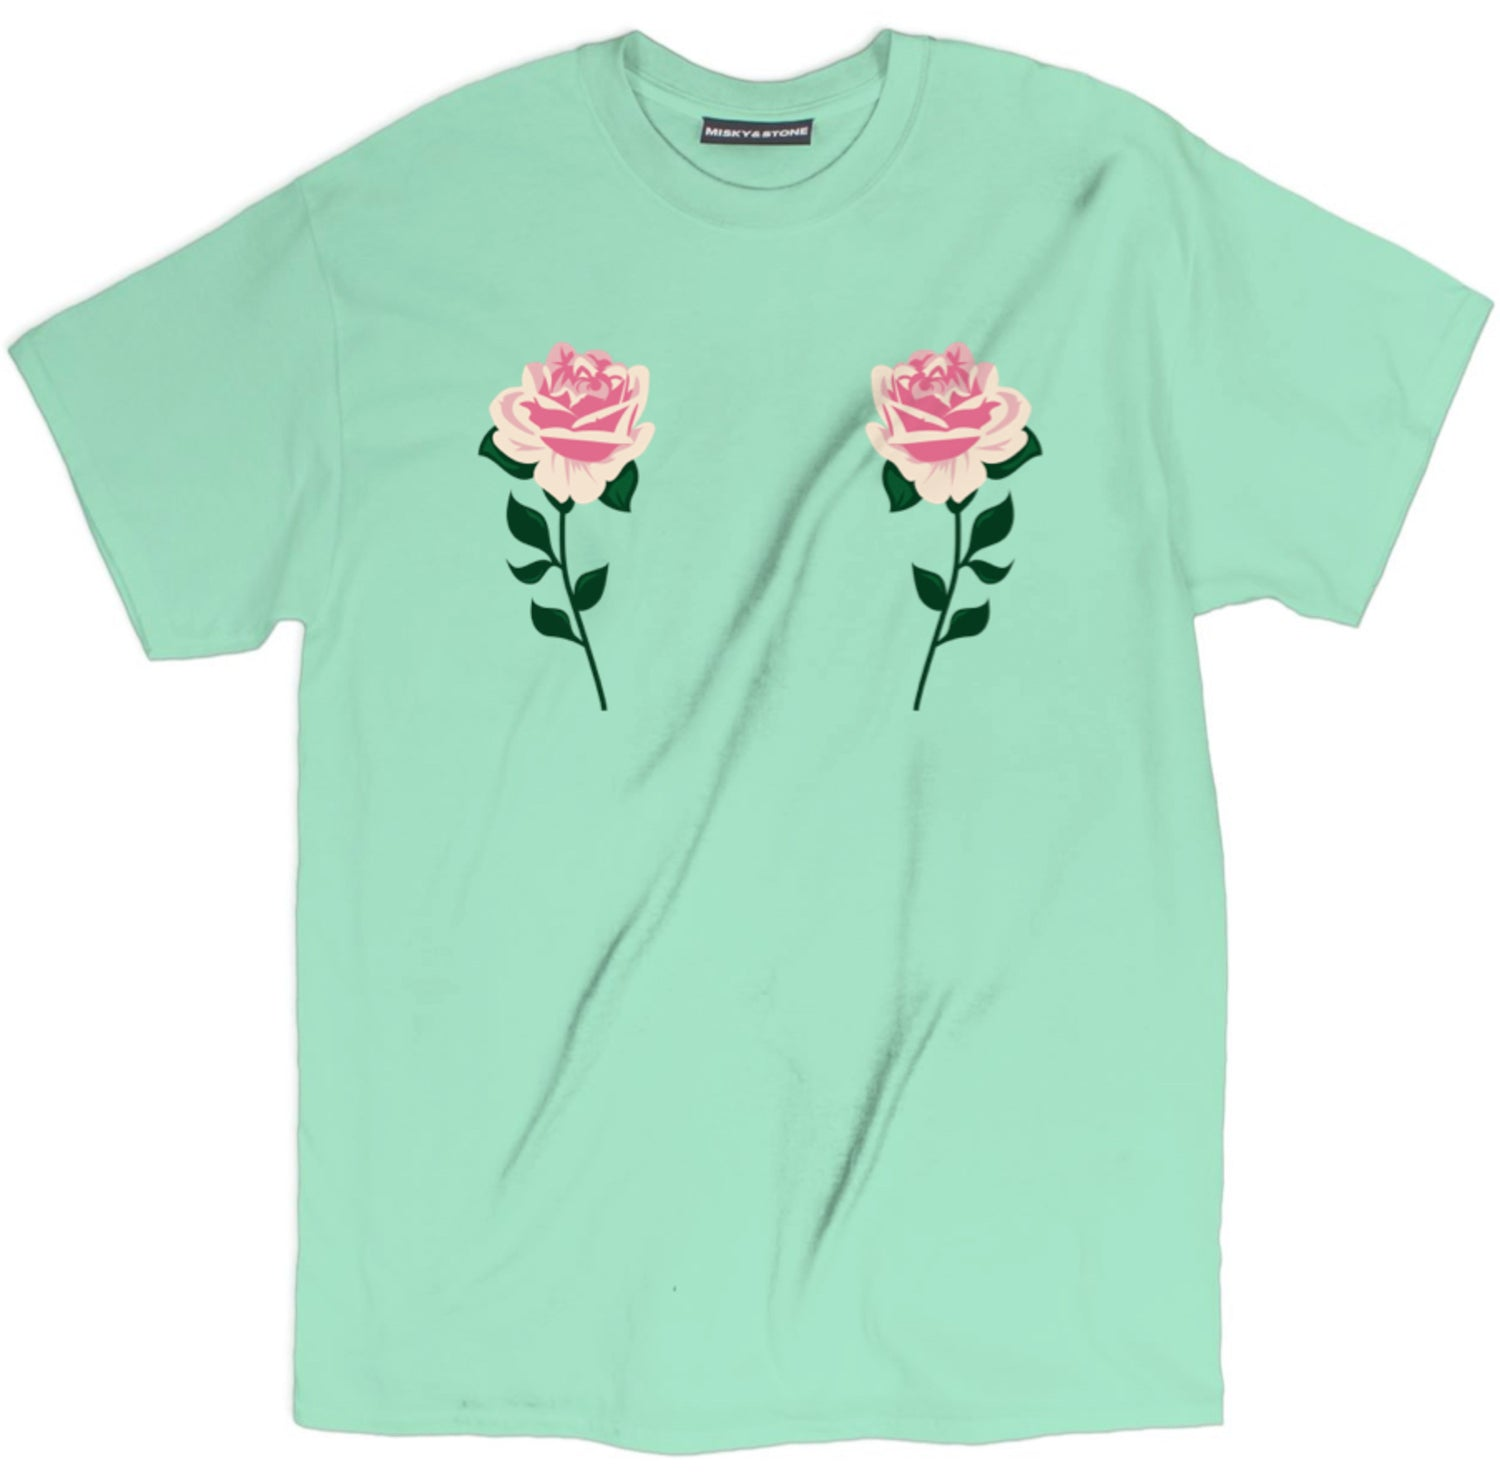 Pink Rose Boob Shirt